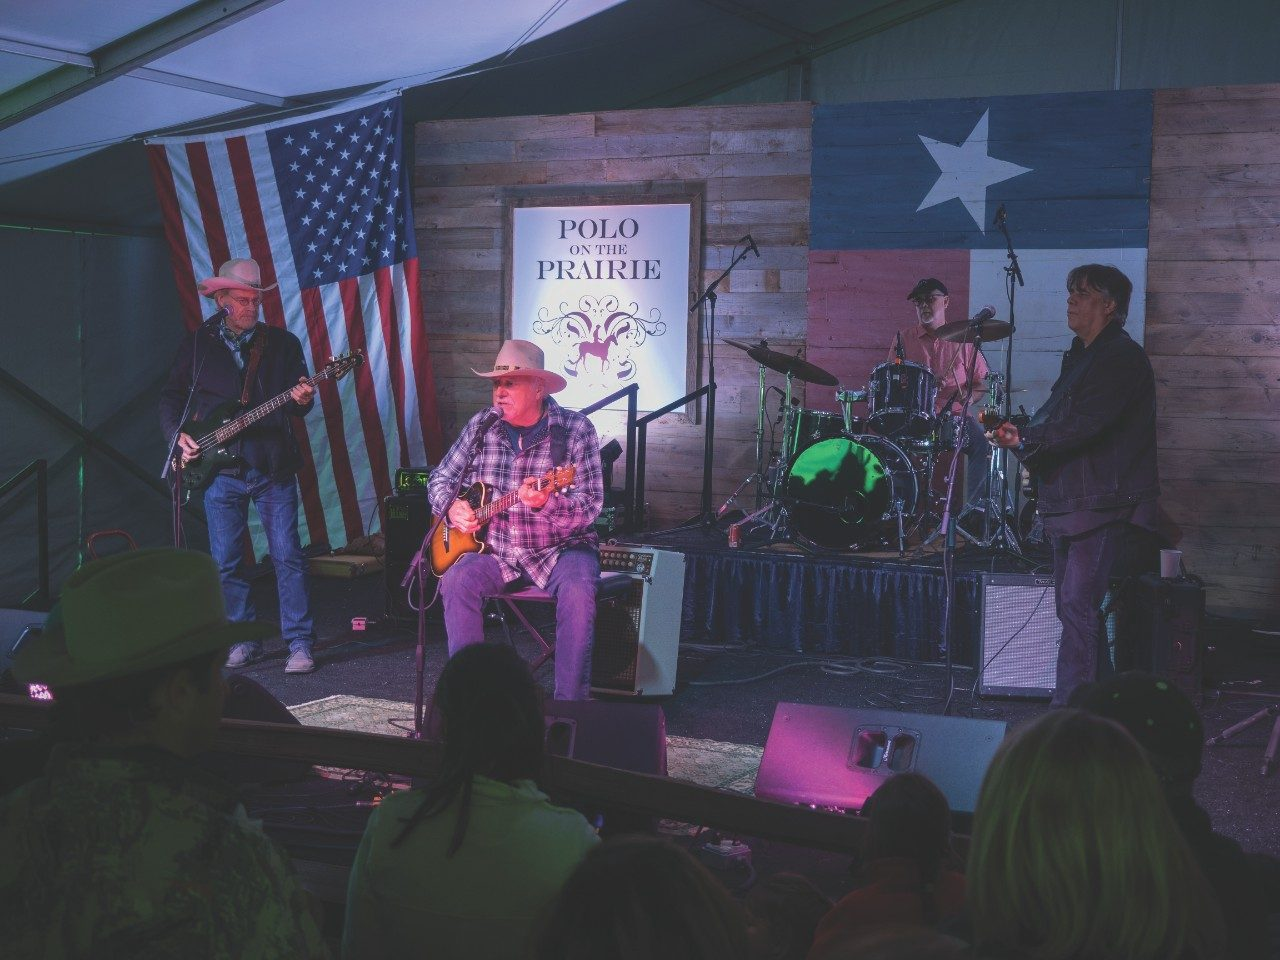 Country music legend Jerry Jeff Walker performs at Polo on the Prairie, an annual fundraiser to support patient care and research at MD Anderson.